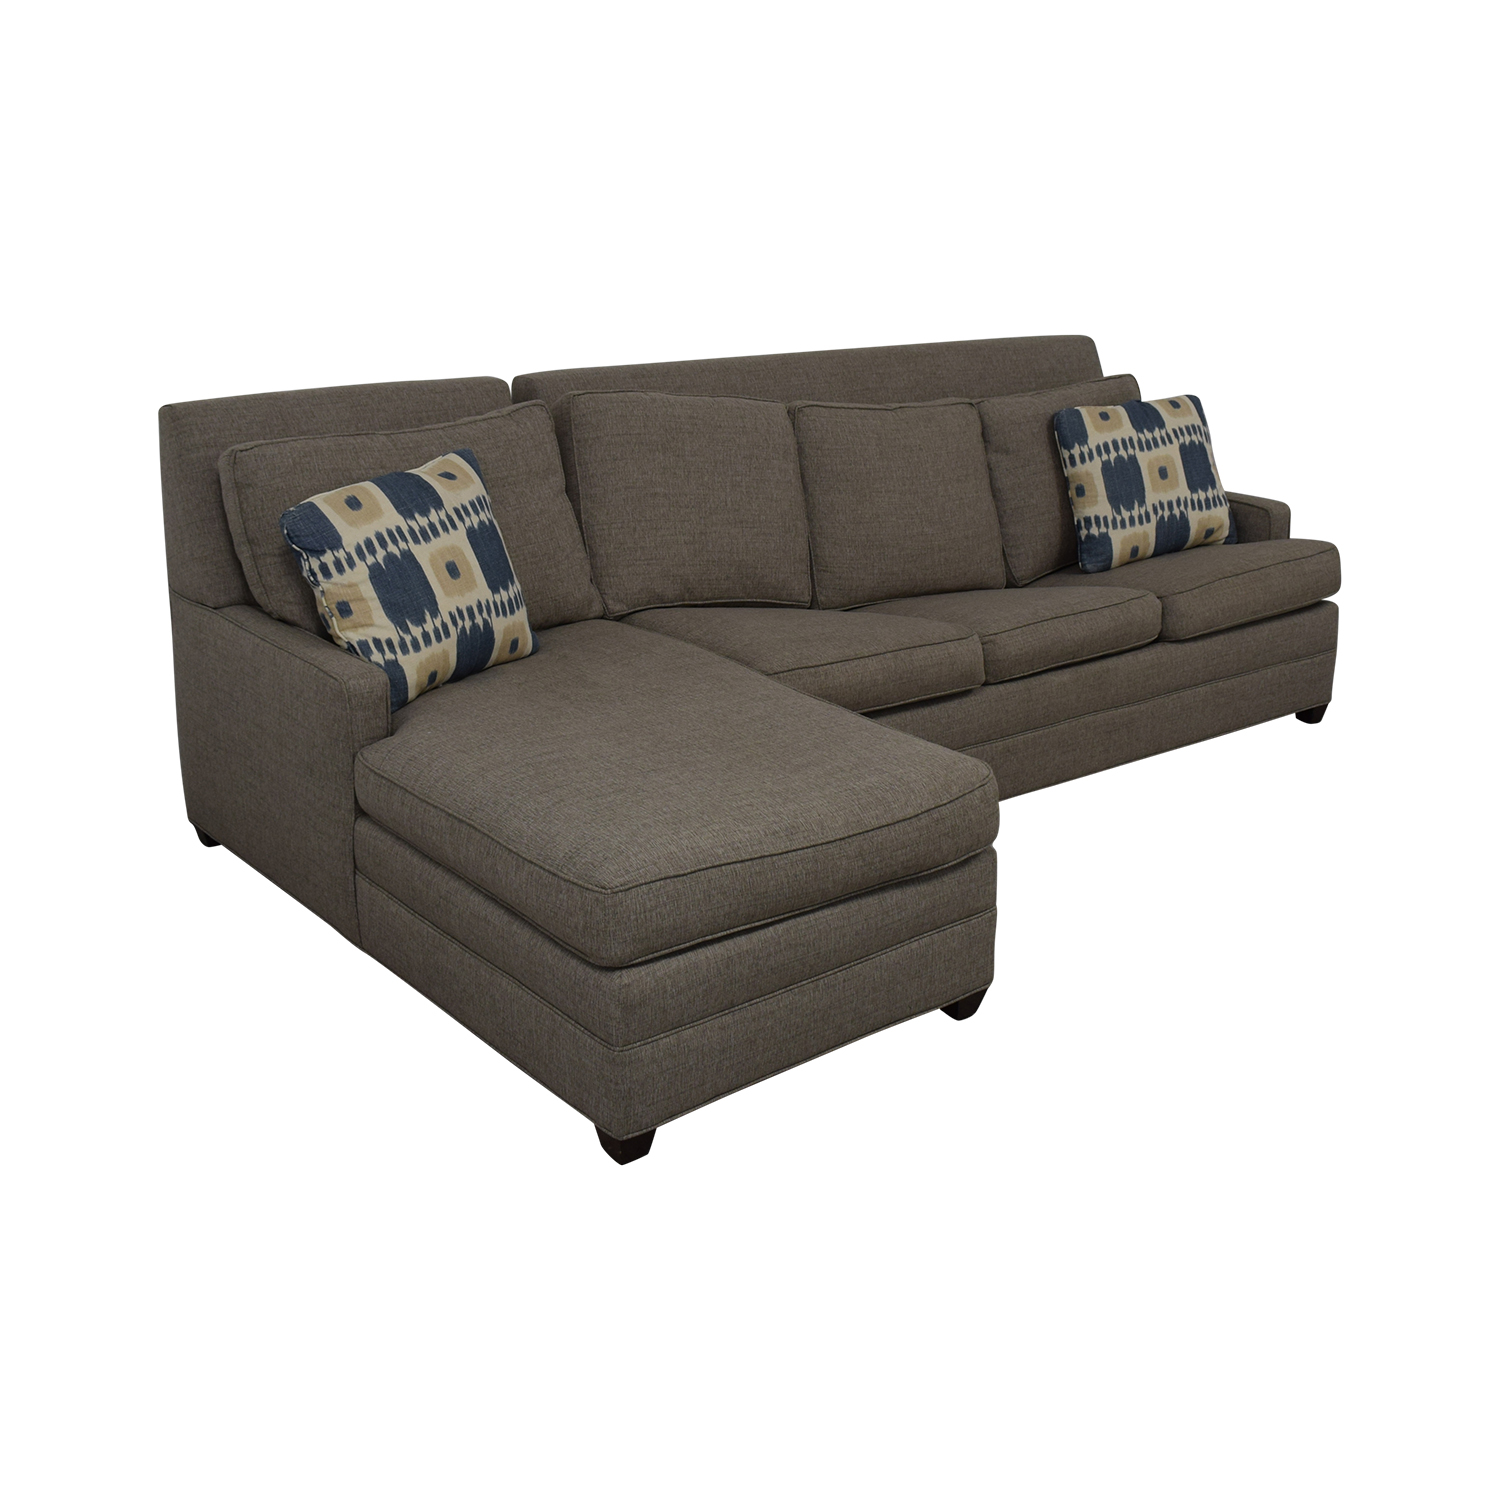 Vanguard Furniture Left Chaise Queen Sleeper Sofa sale